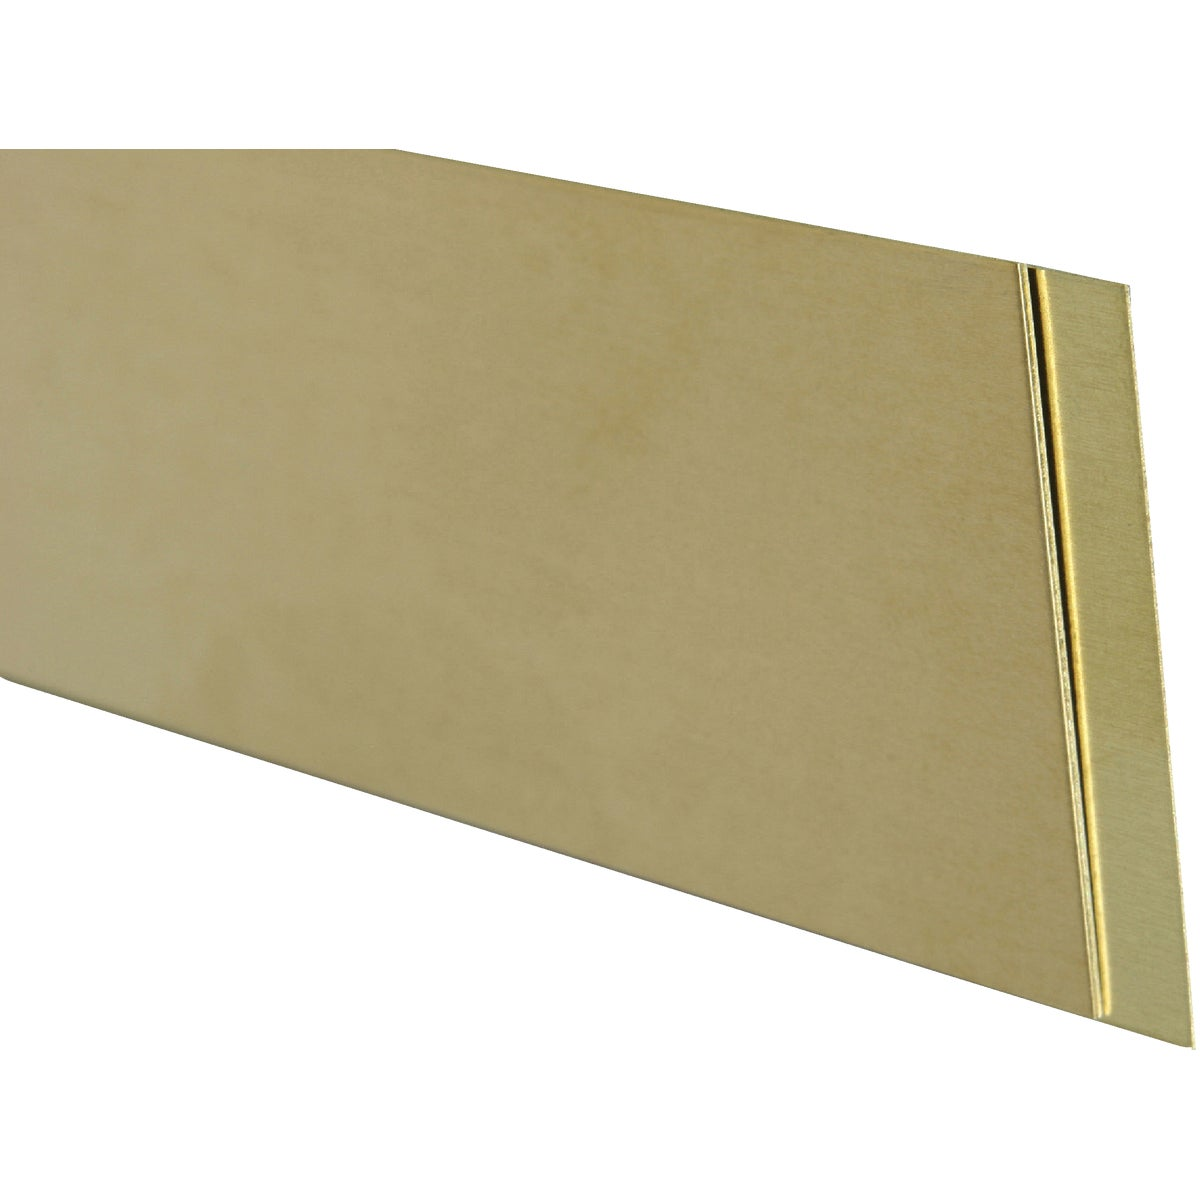 .093X3/4X12 BRASS STRIP - 8227 by K&s Precision Metals